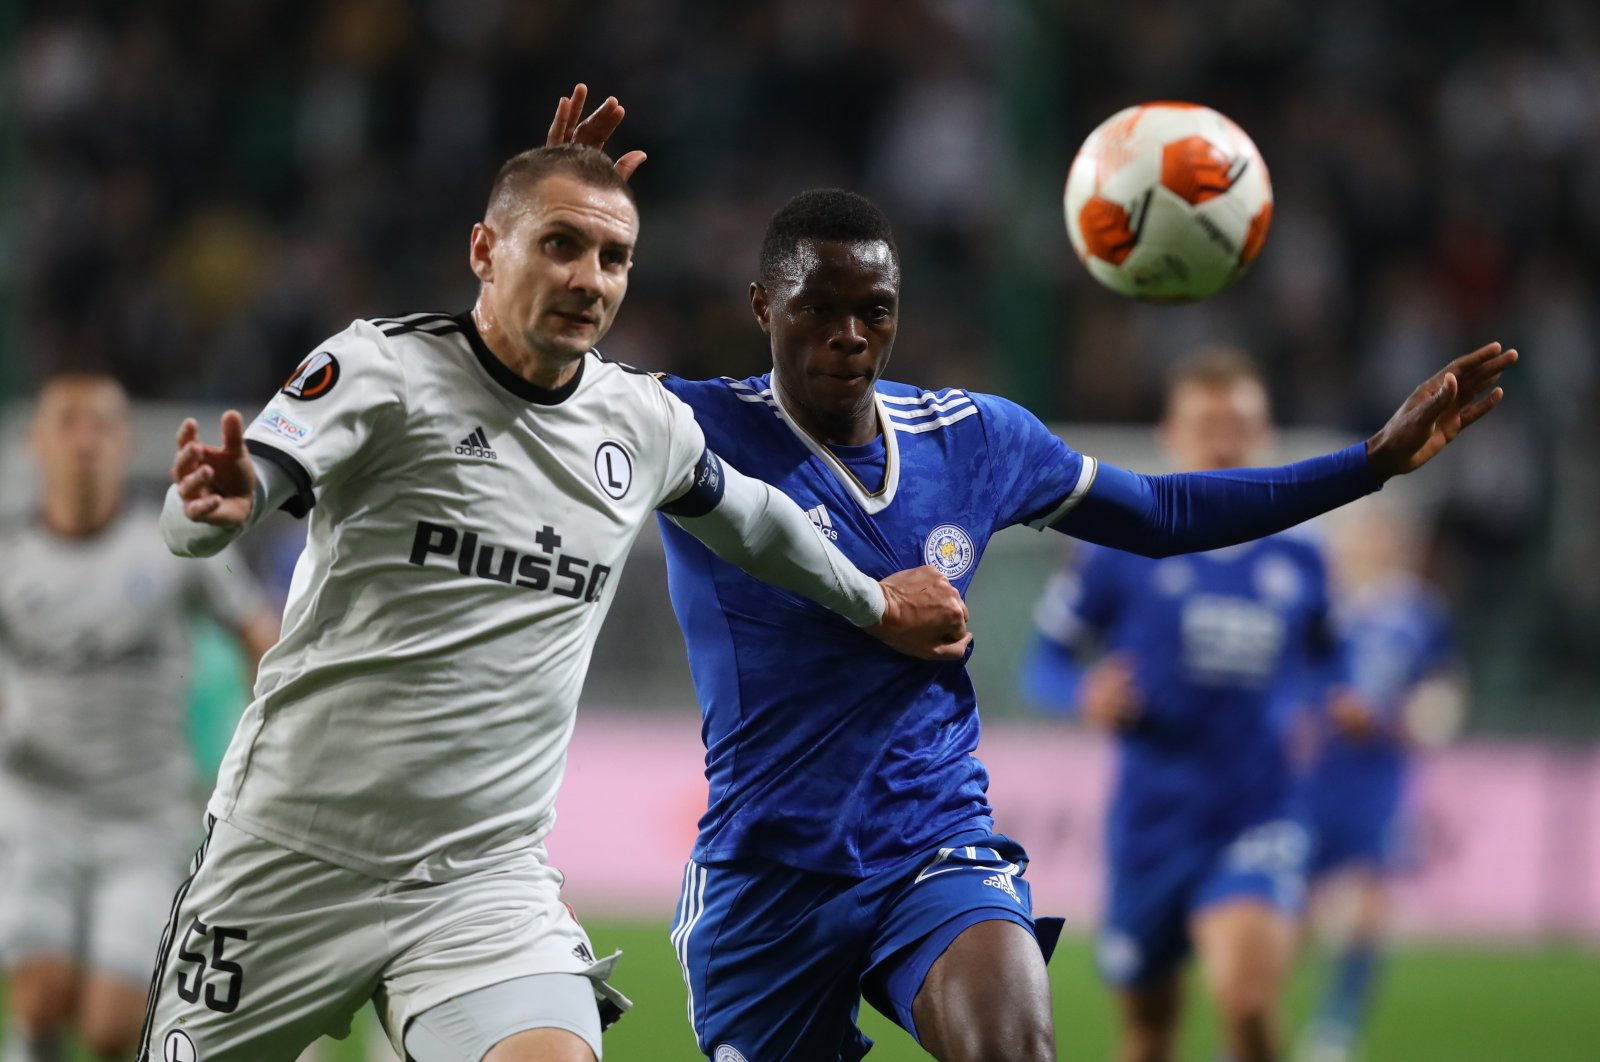 Legia Warsaw's Artur Jedrzejczyk in action with Leicester City's Patson Daka during a Europa League match in Warsaw, Poland, Sept. 30, 2021. (Reuters Photo)